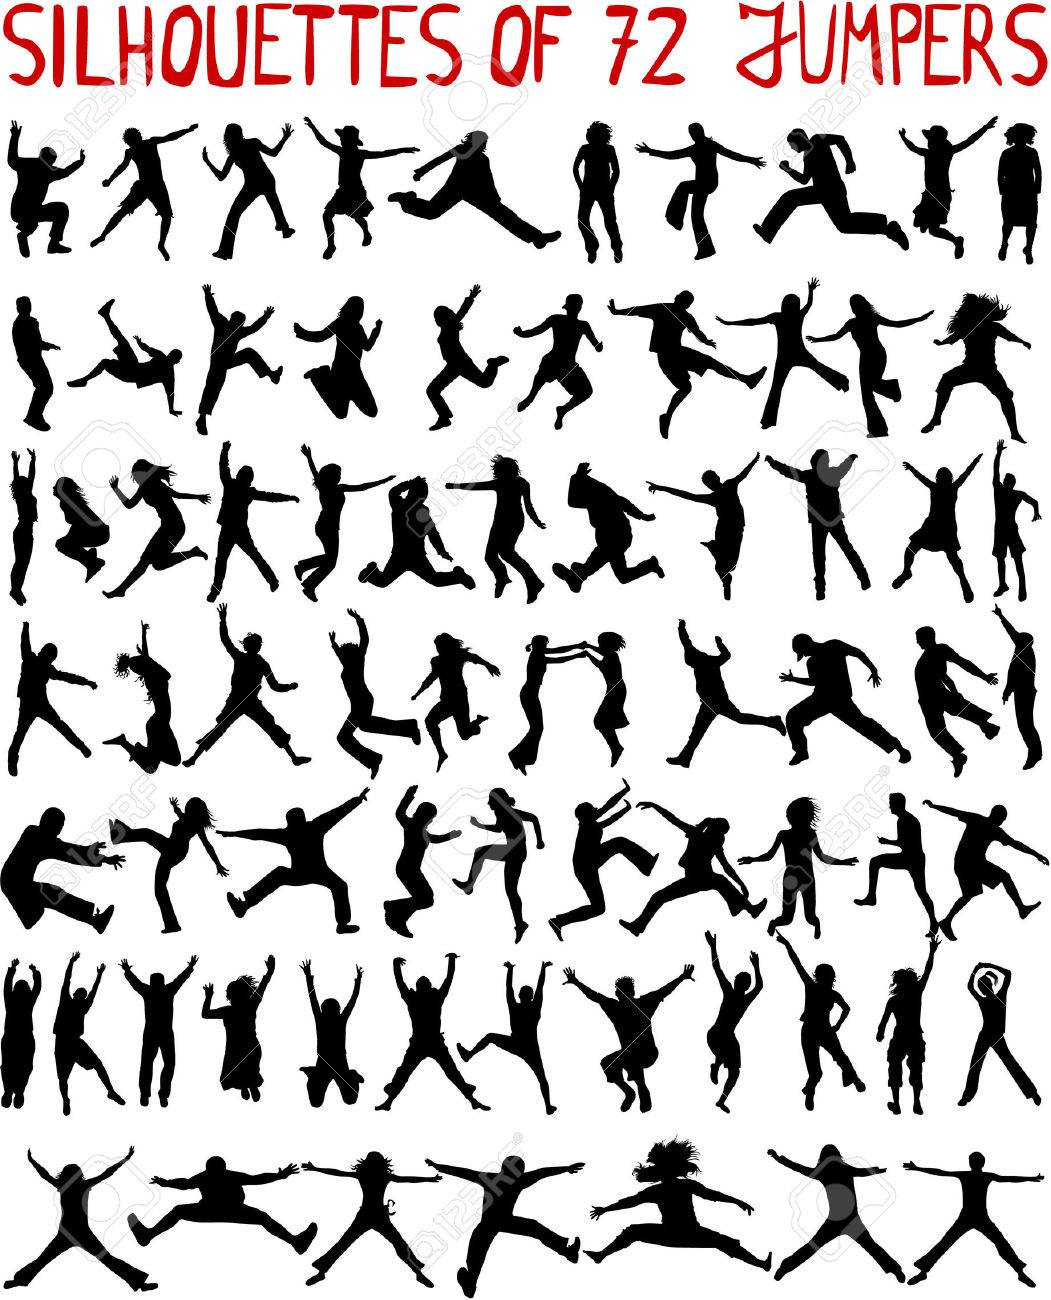 large collection - 72 profiles of people jumping - 8666612